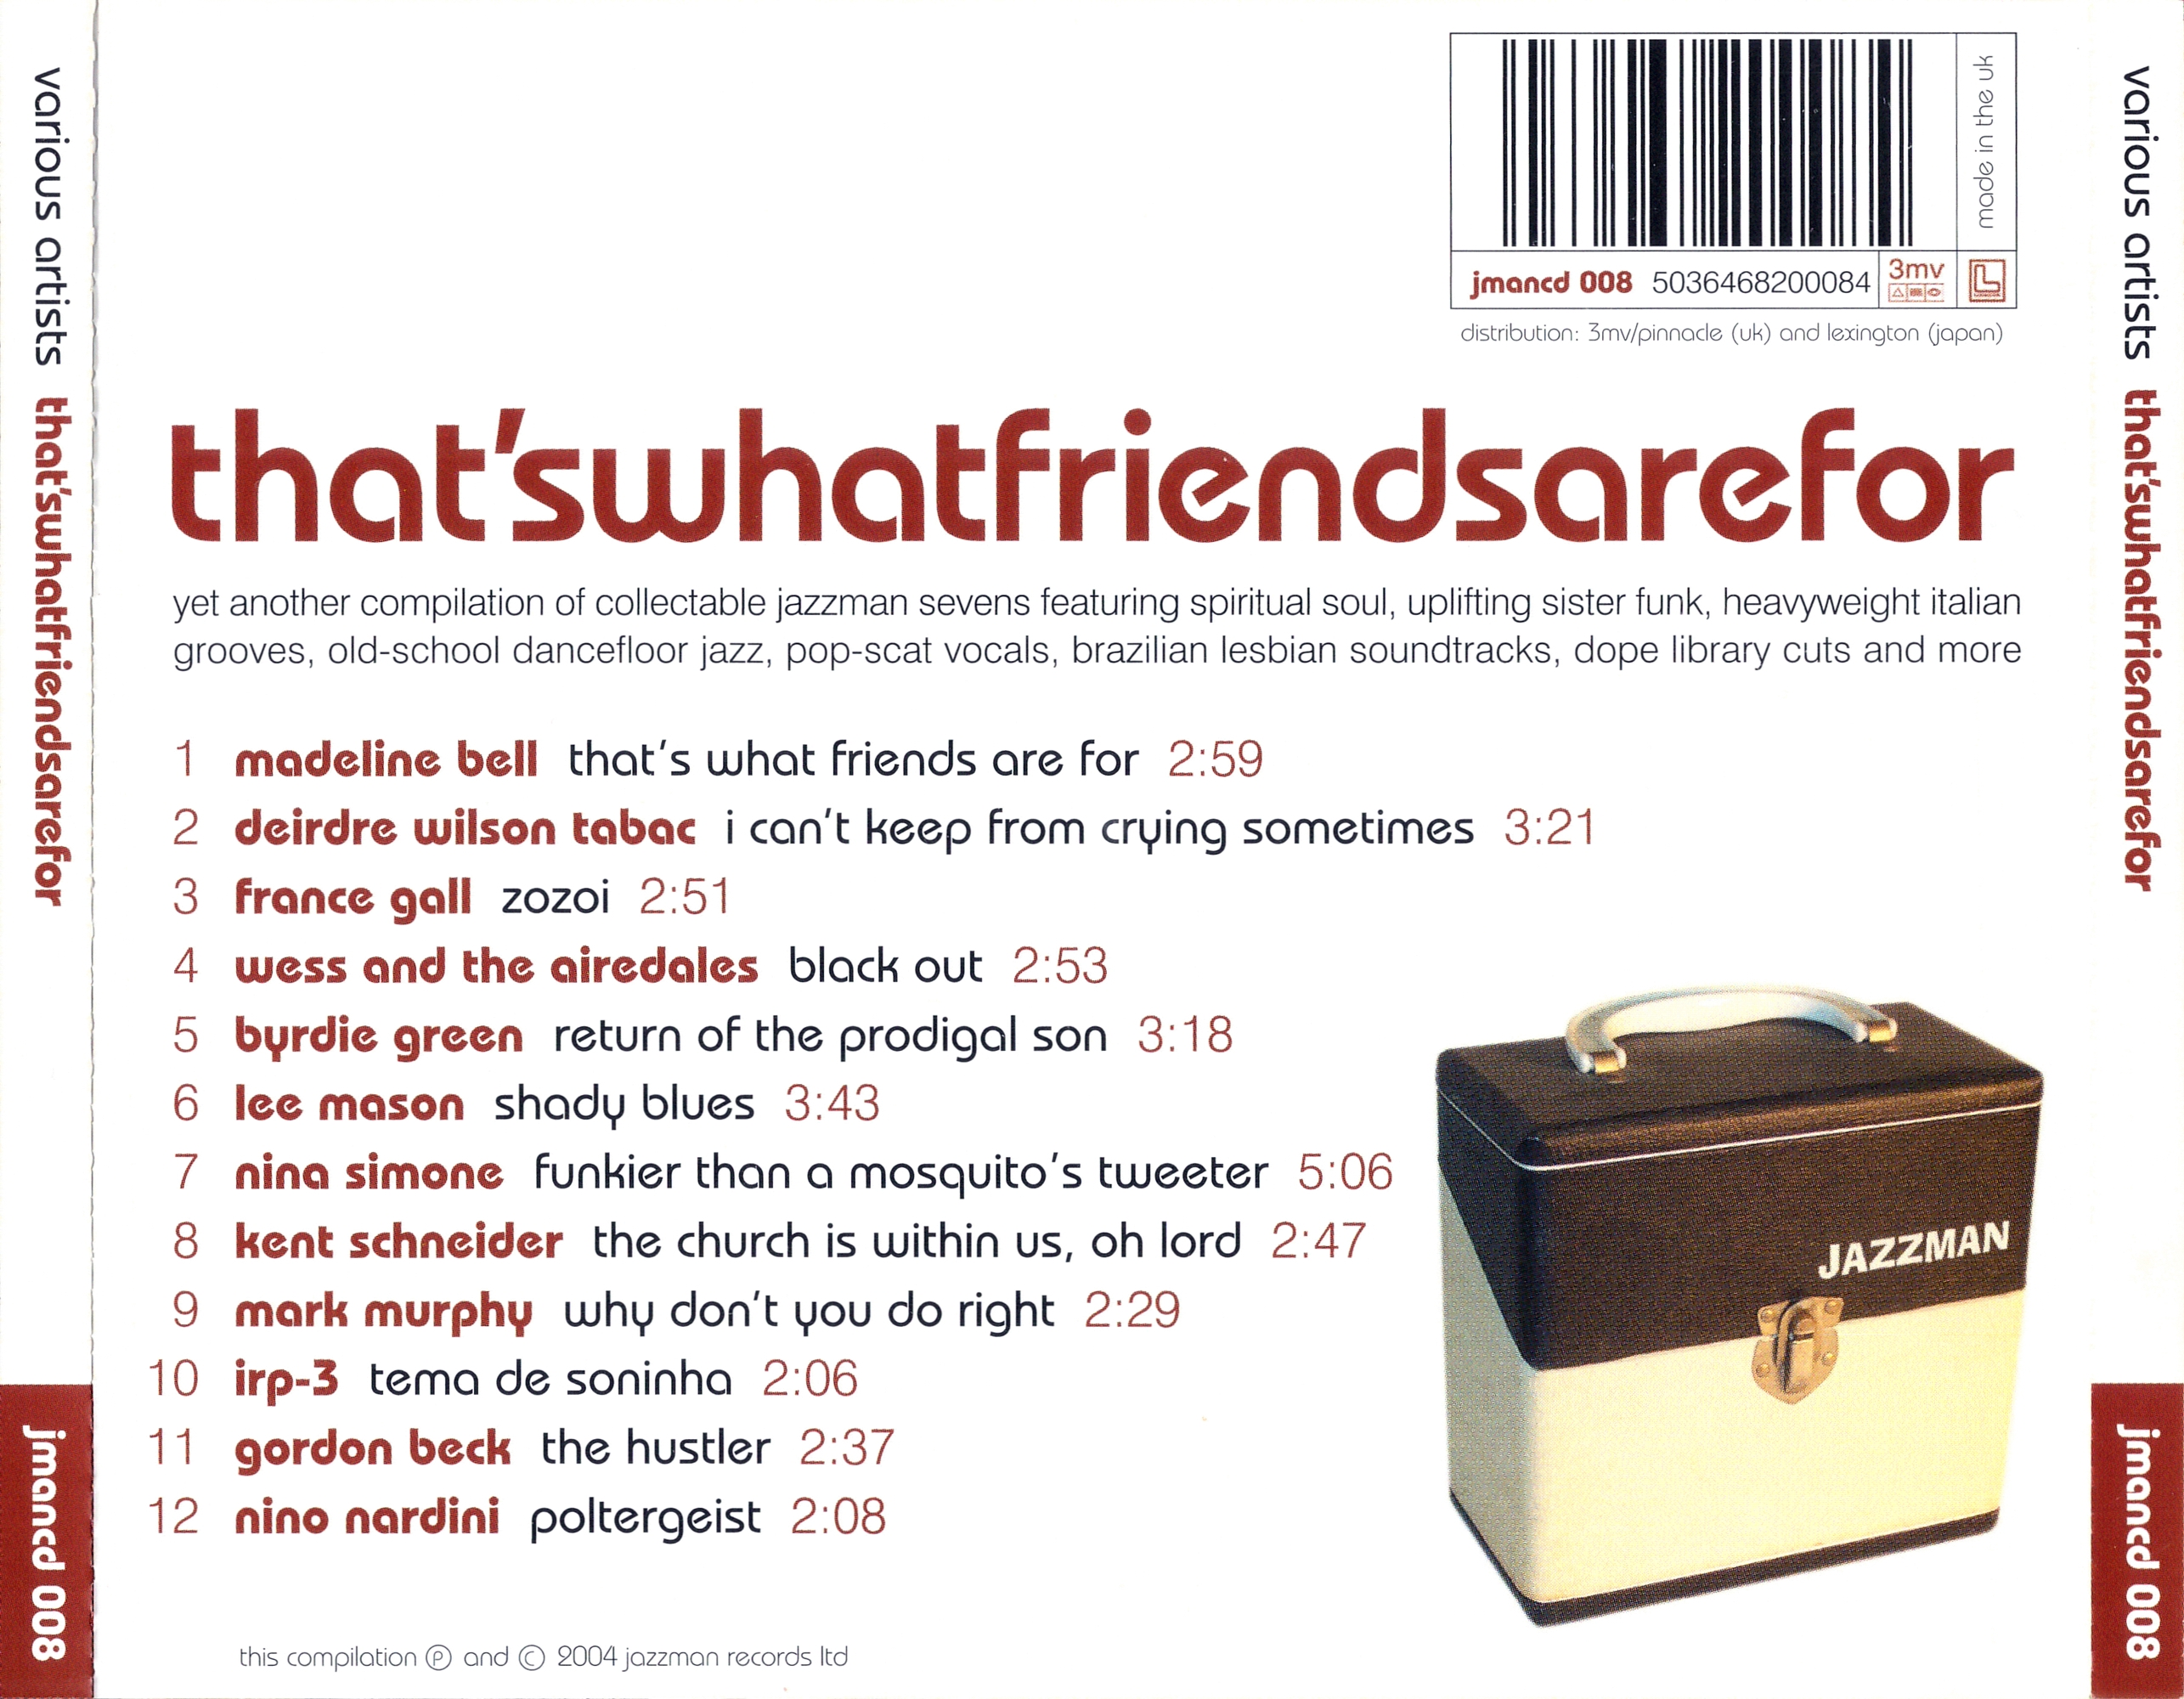 Download Va Thats What Friends Are For Jmancd008 Cd 2004 Leb Int Freemusicdl Club